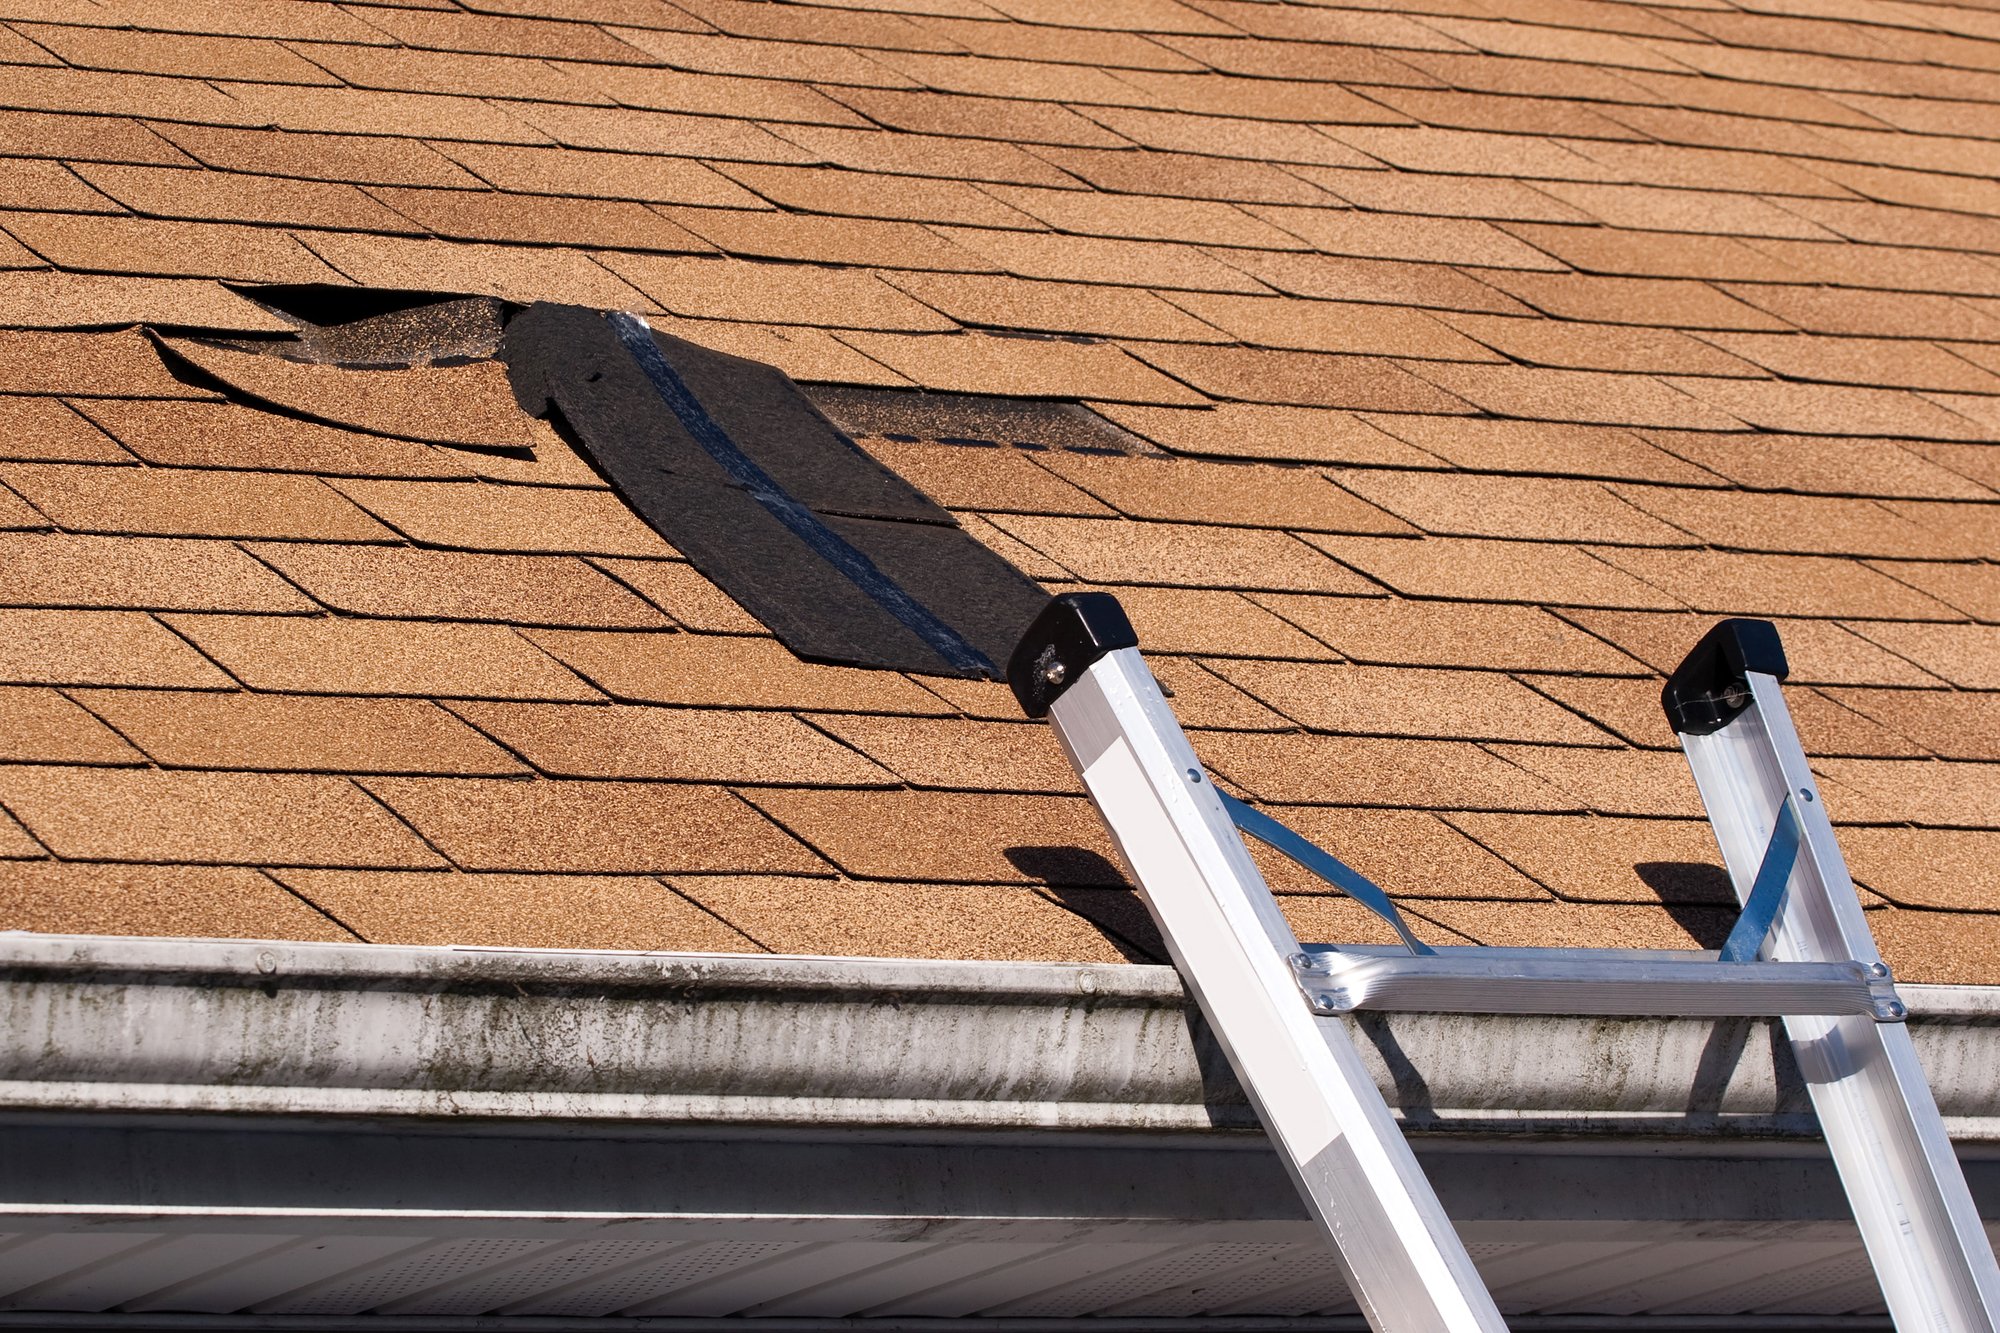 How Often Should You Inspect Your Roofing? - Tory's Roofing ...